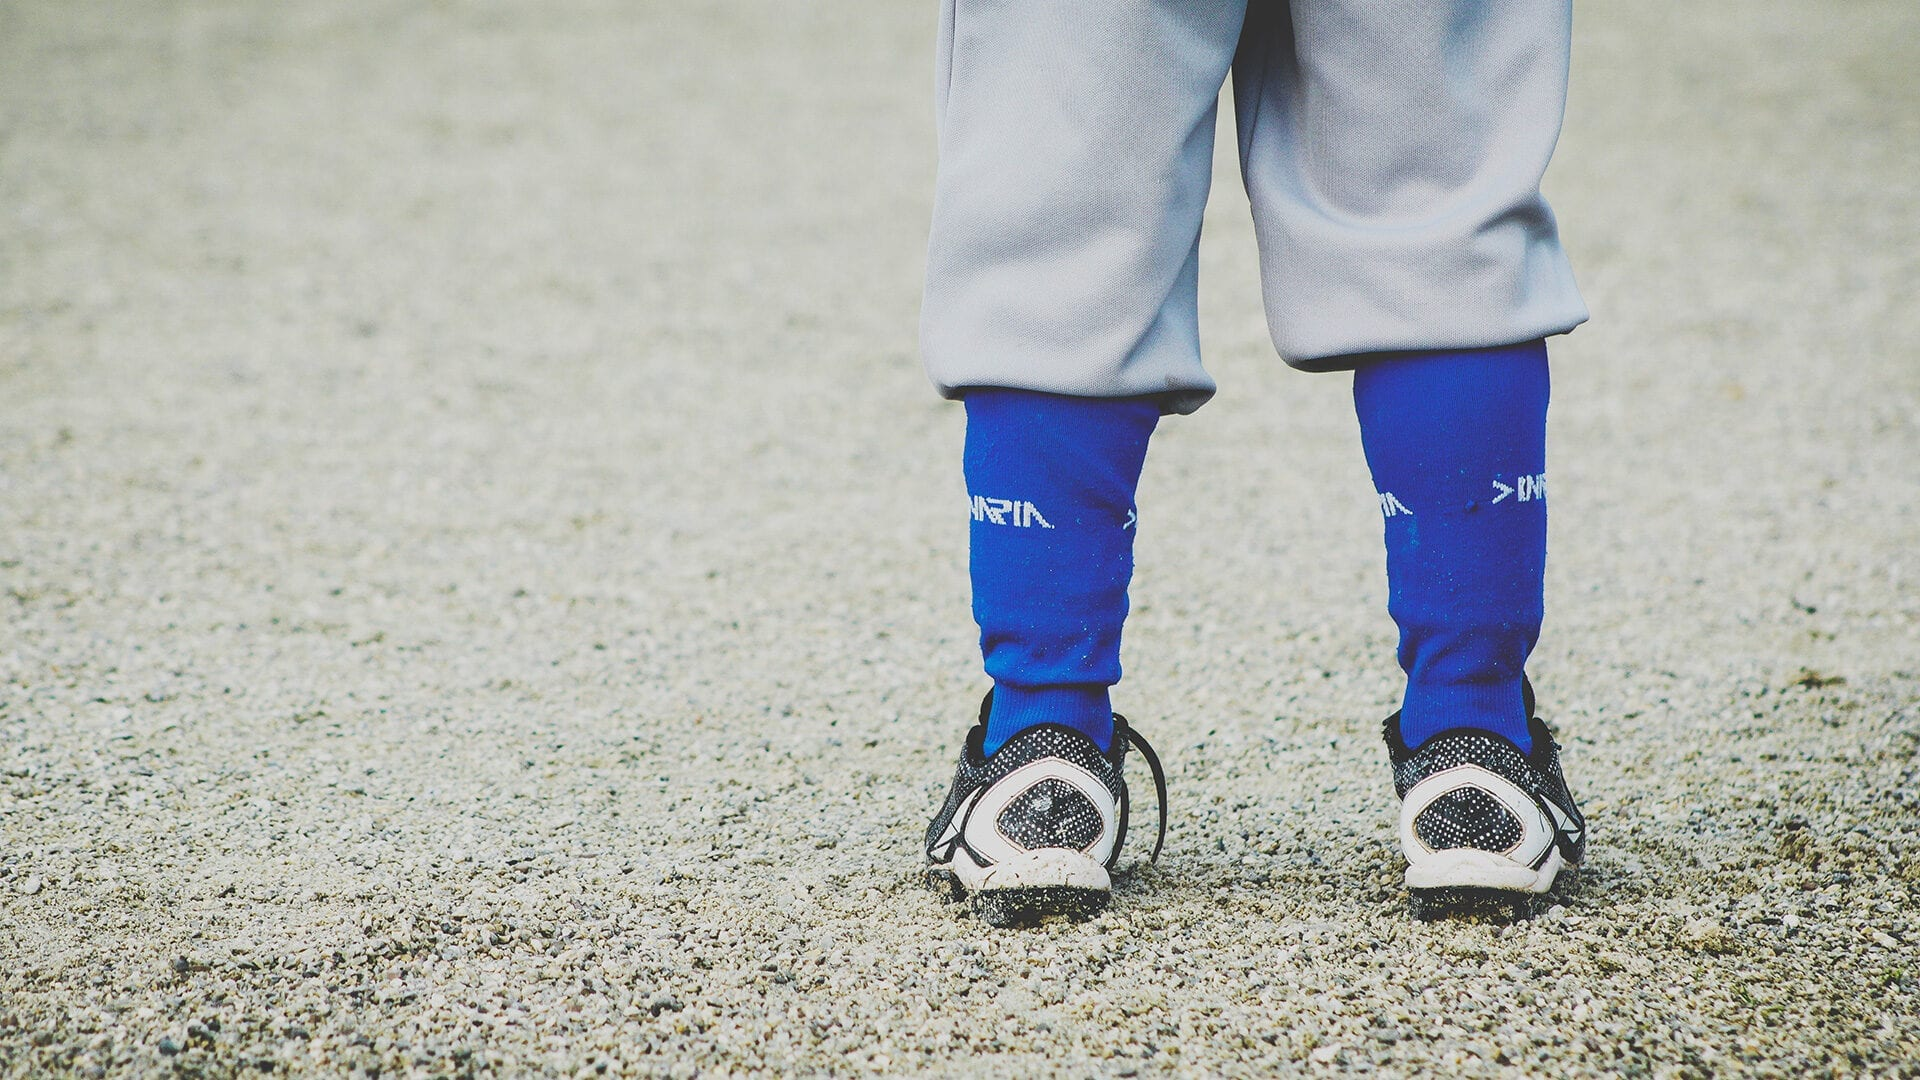 A child's ankles dressed in sports socks and cleats